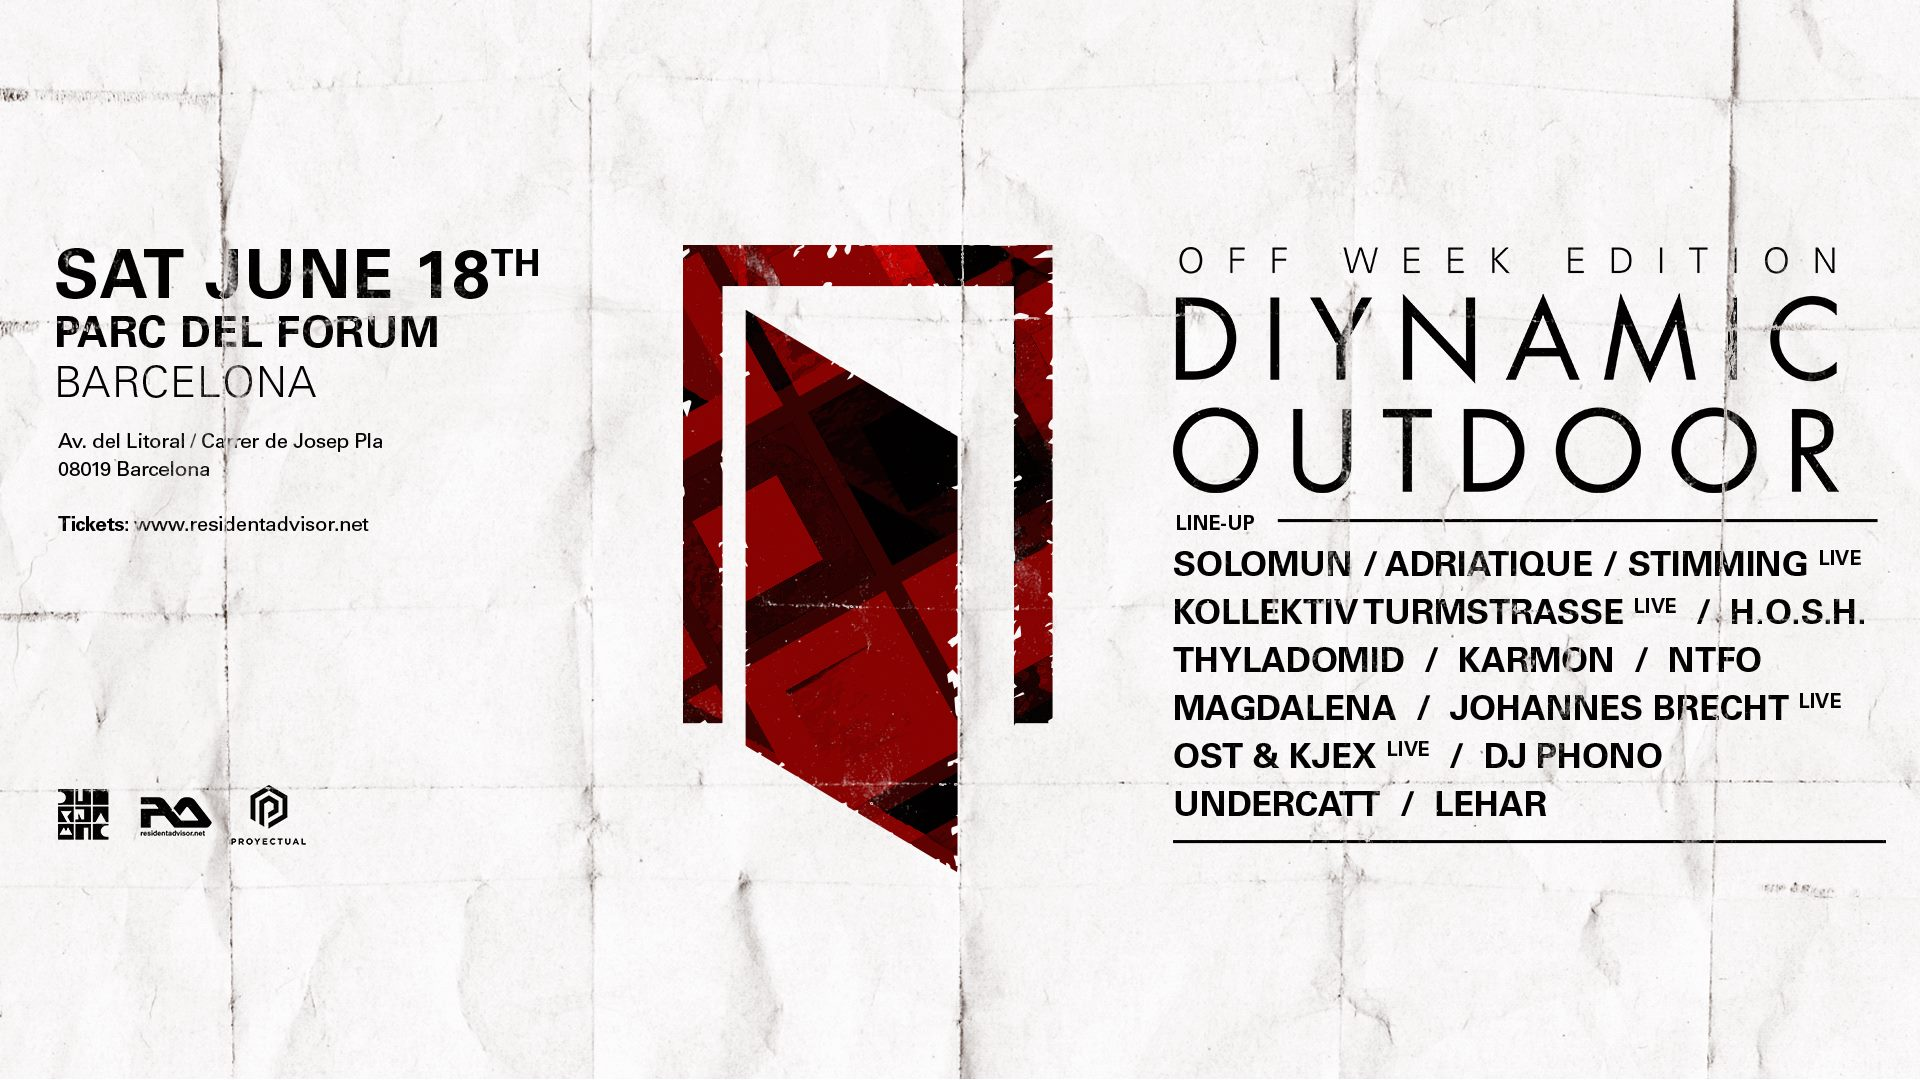 Diynamic Outdoor, Off Week Edition 2016 - Electronic Groove